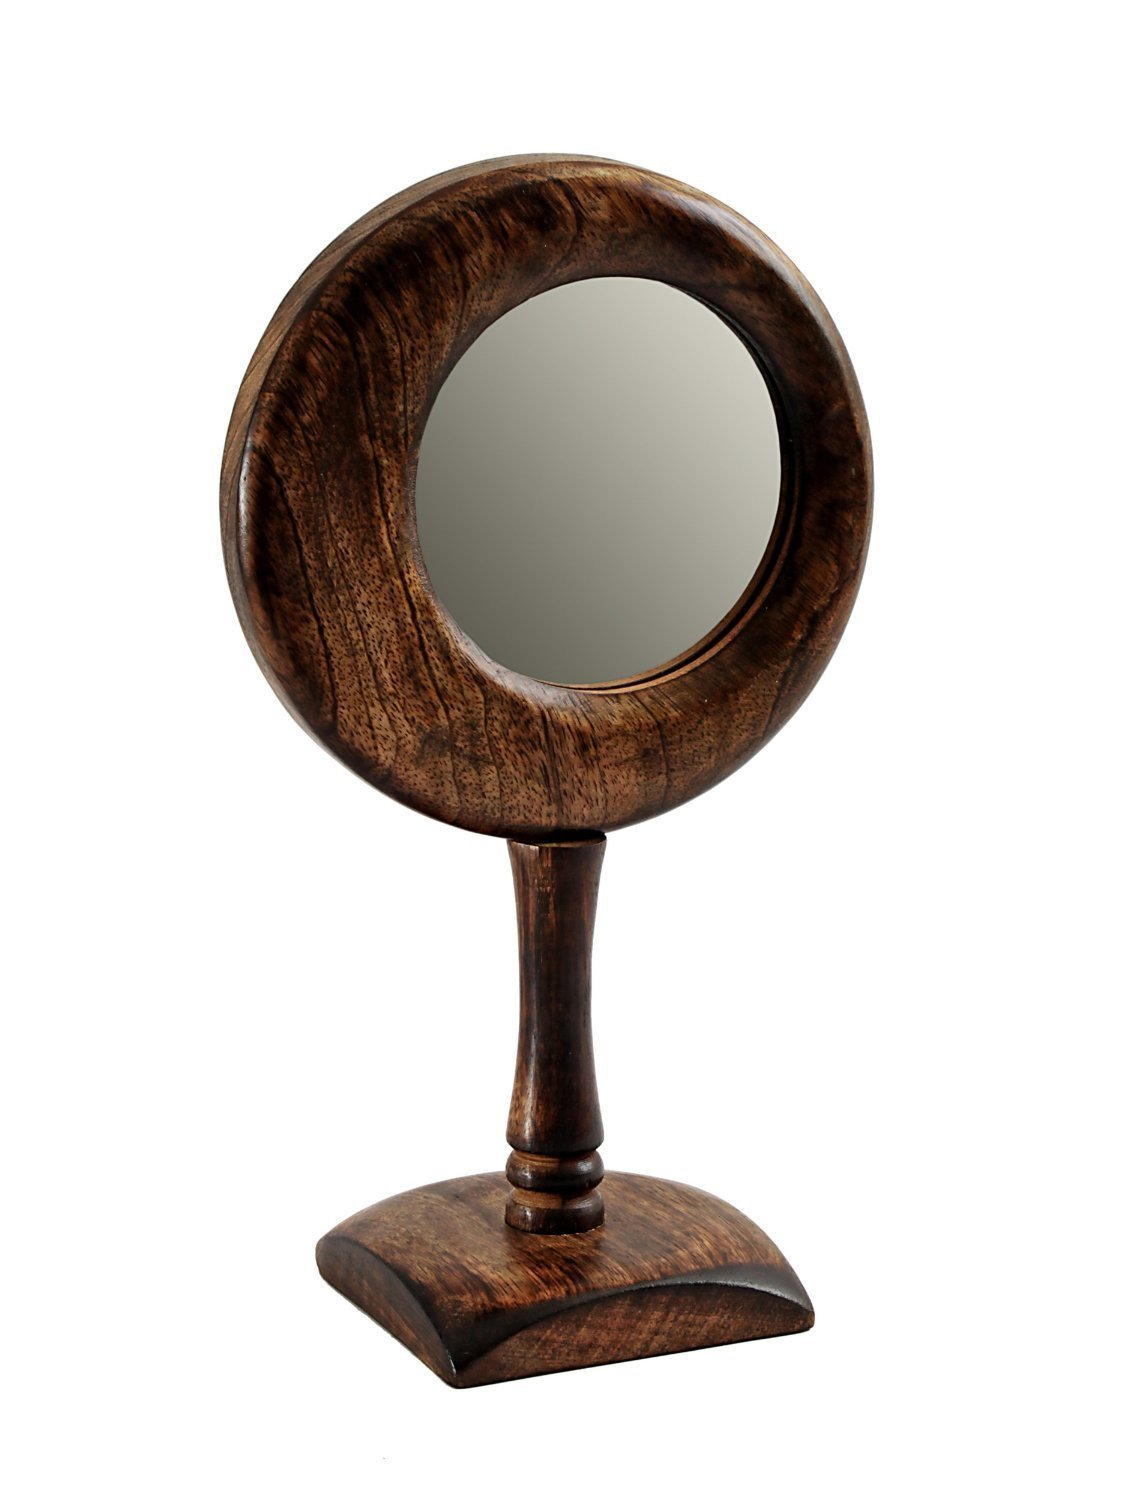 Handheld Mirror Wooden Handcrafted Decorative Vintage Fashion Beauty Accessory